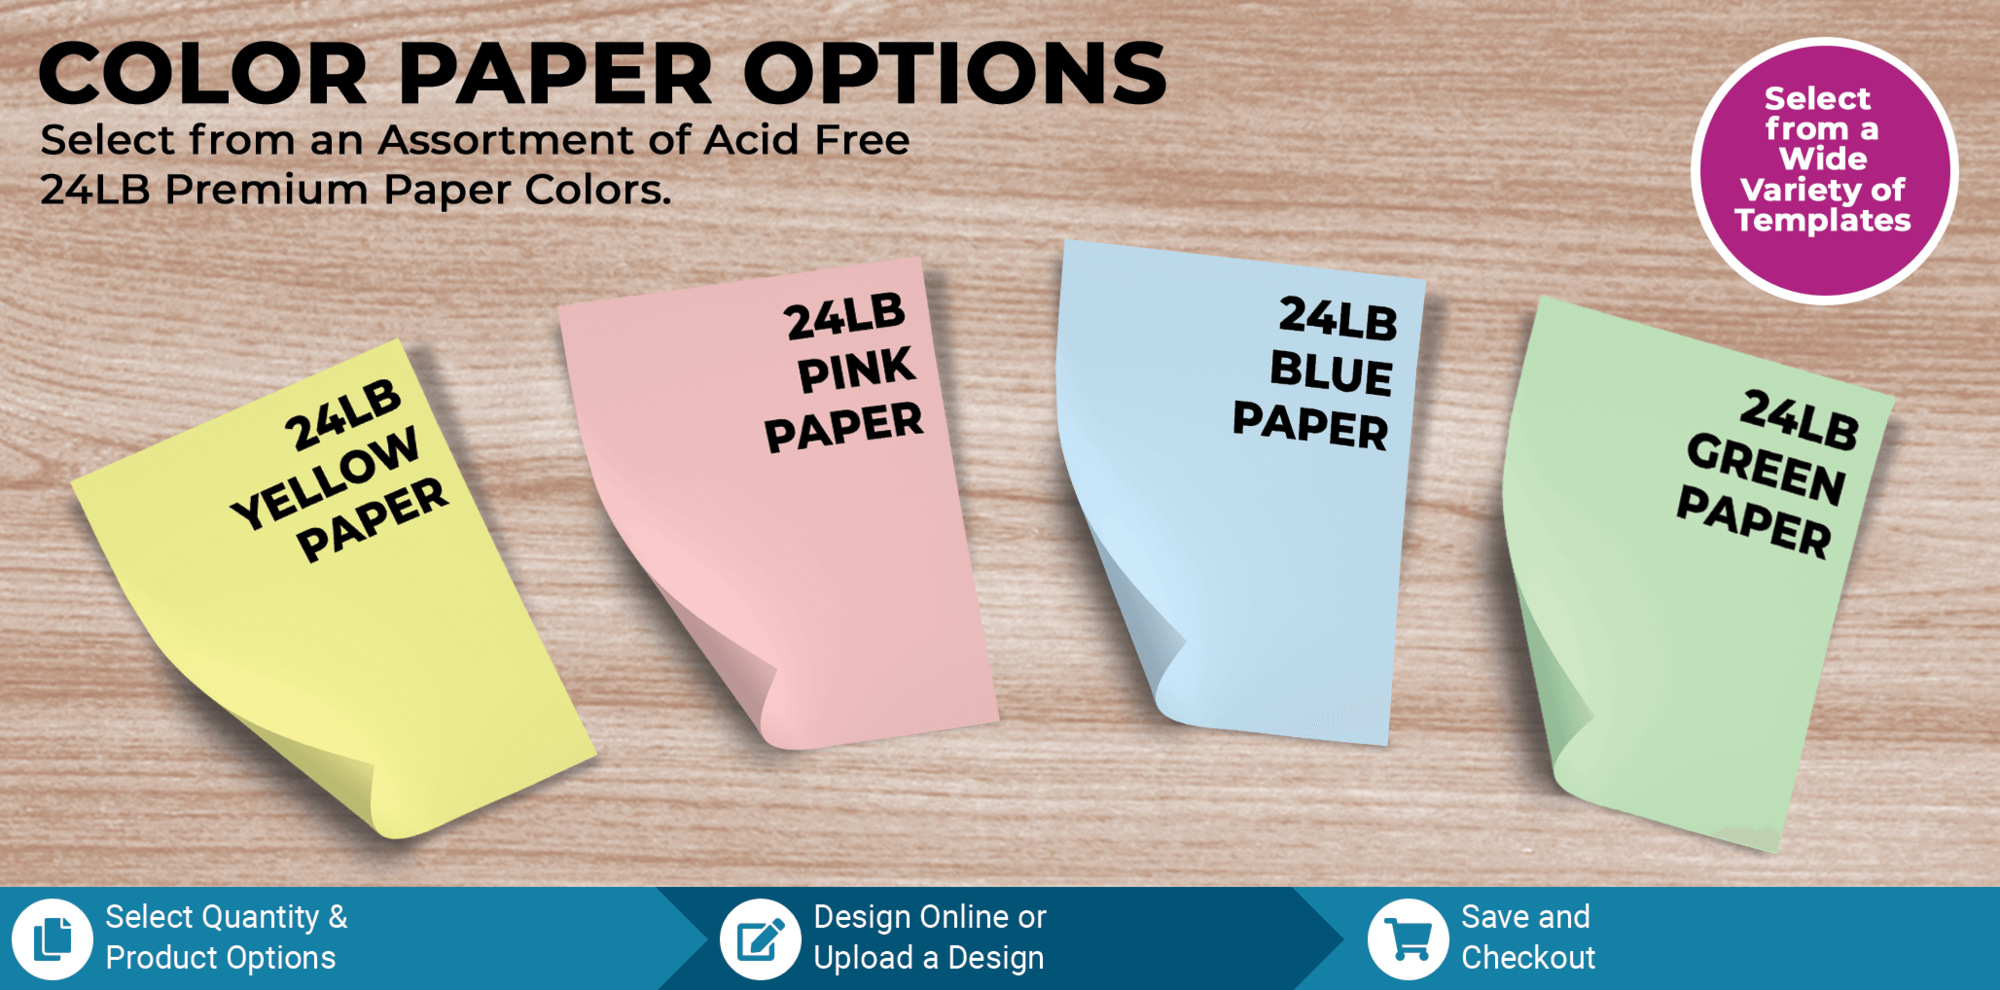 https://printpps.com/images/products_gallery_images/Custom-Sticky-Notes_Product-Page-Banner-253.png